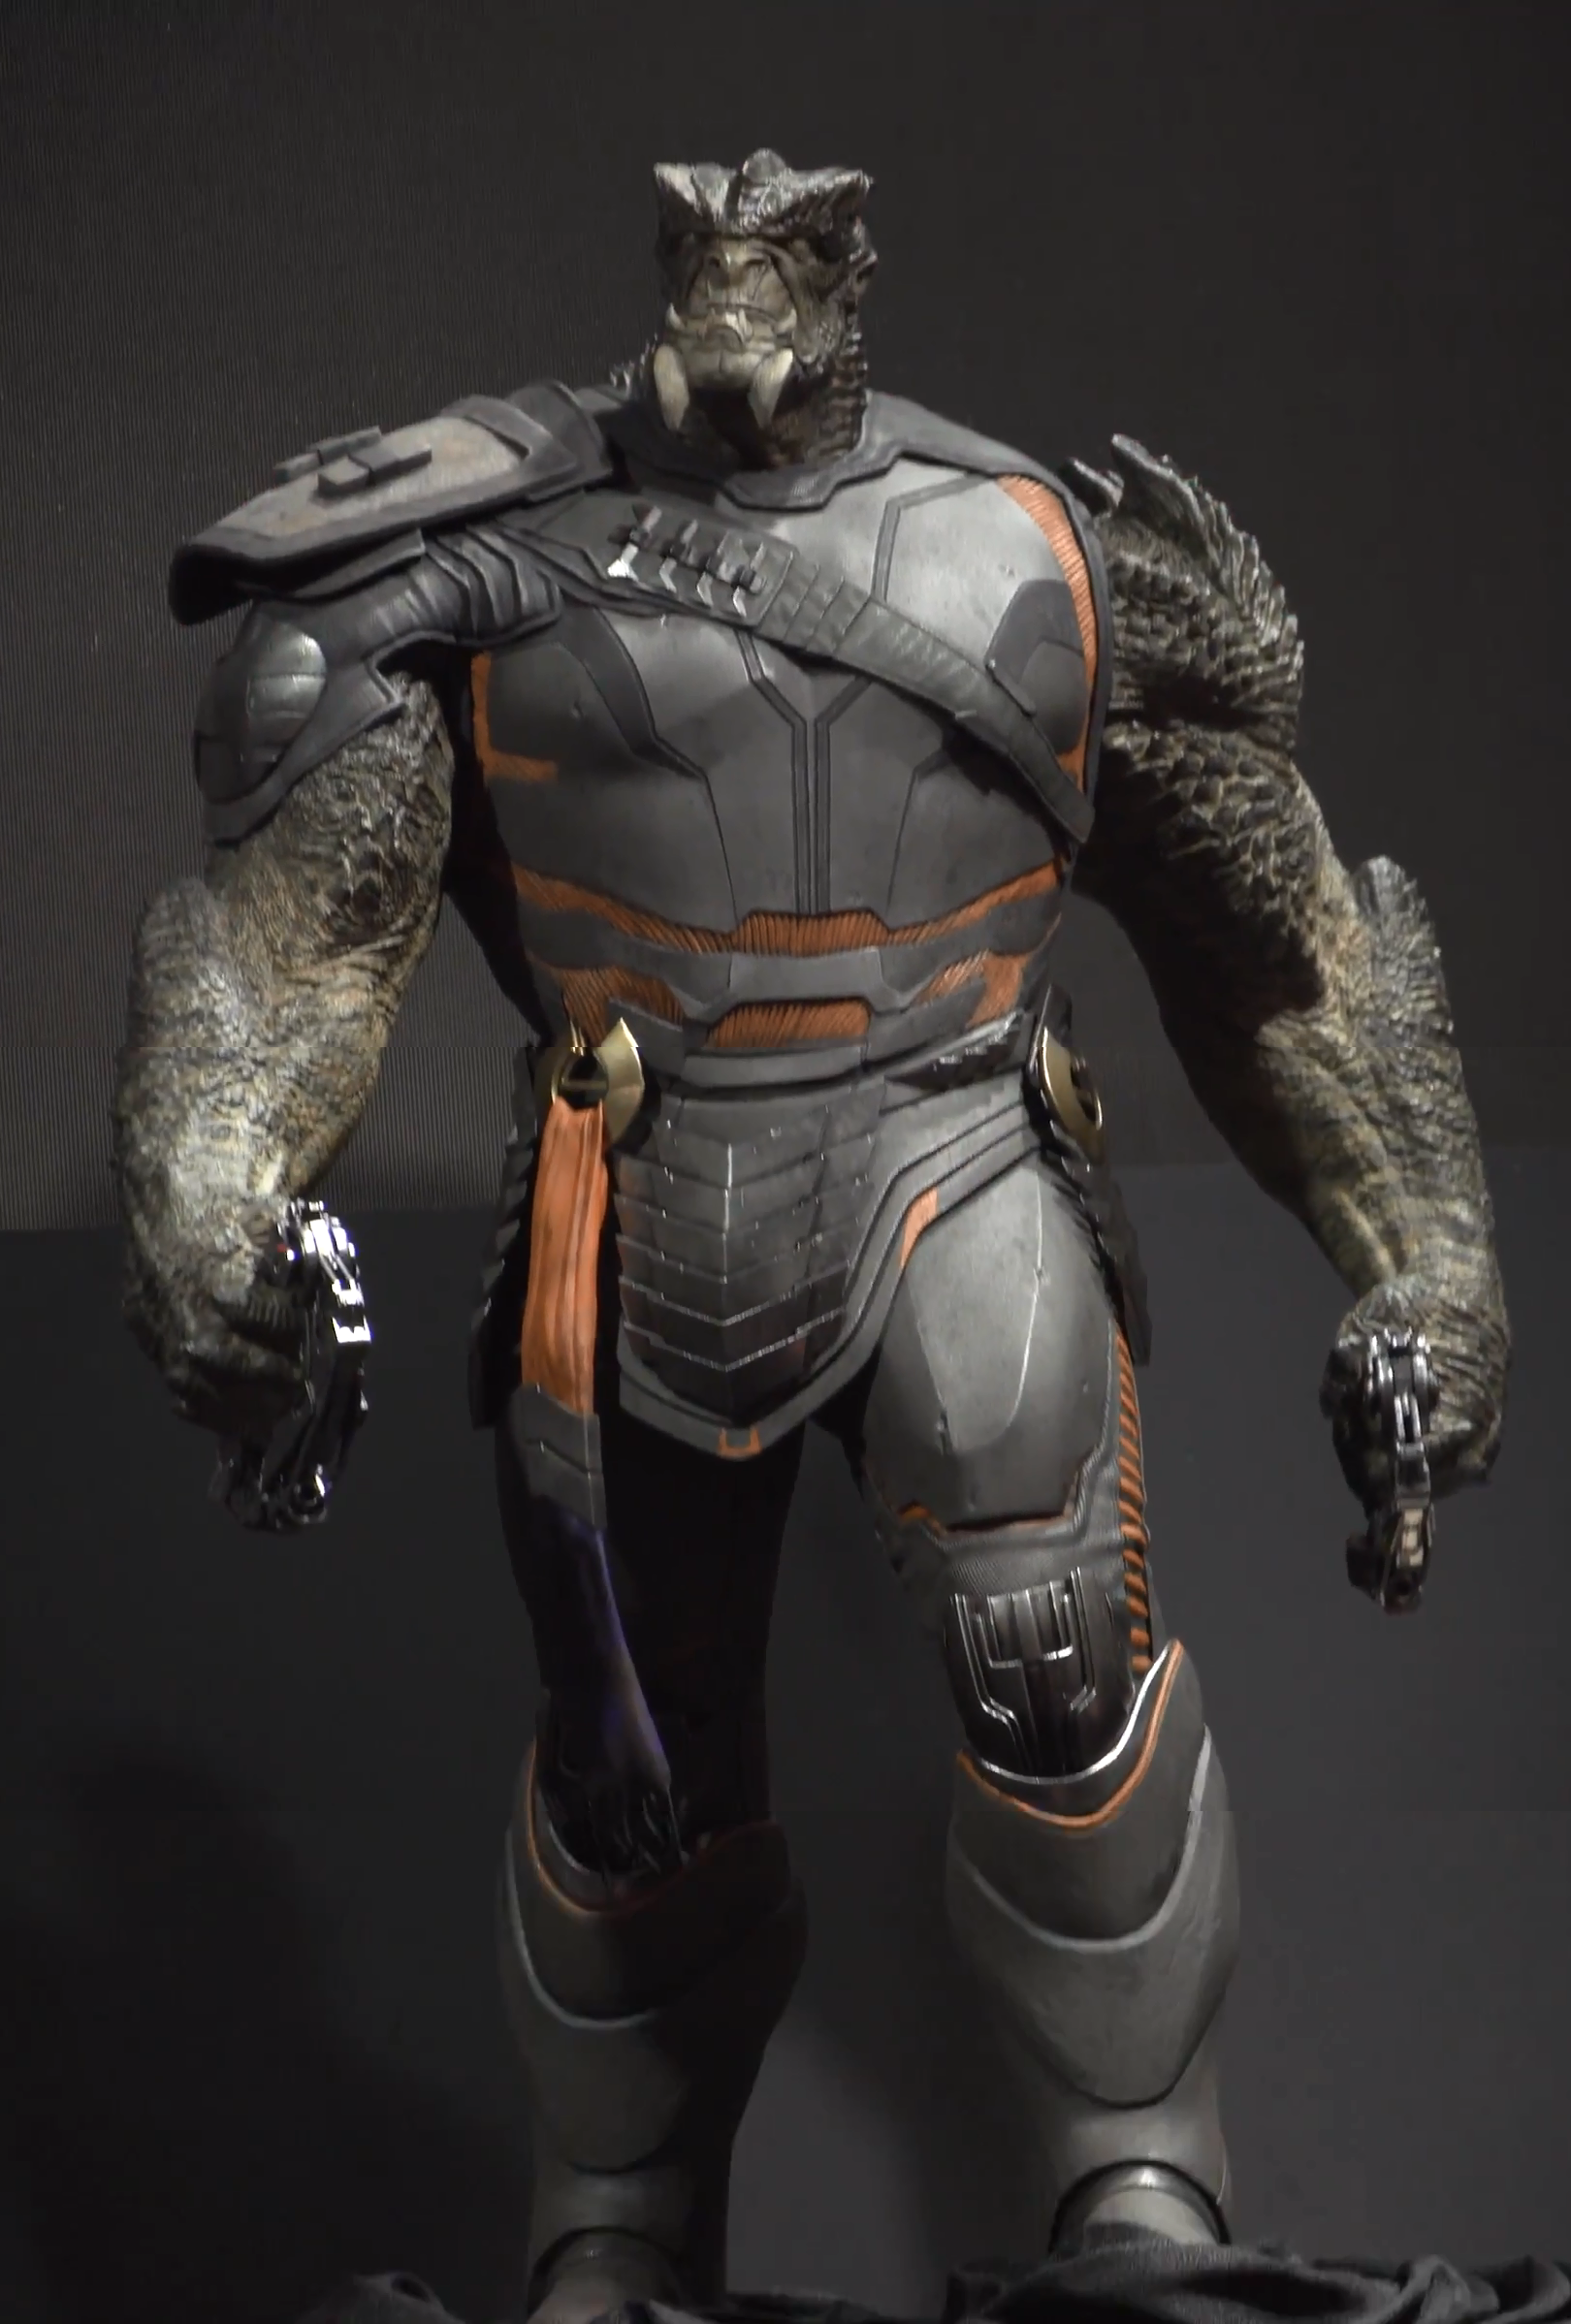 Black Dwarf is a member of Thanos' Black Order, being the ...